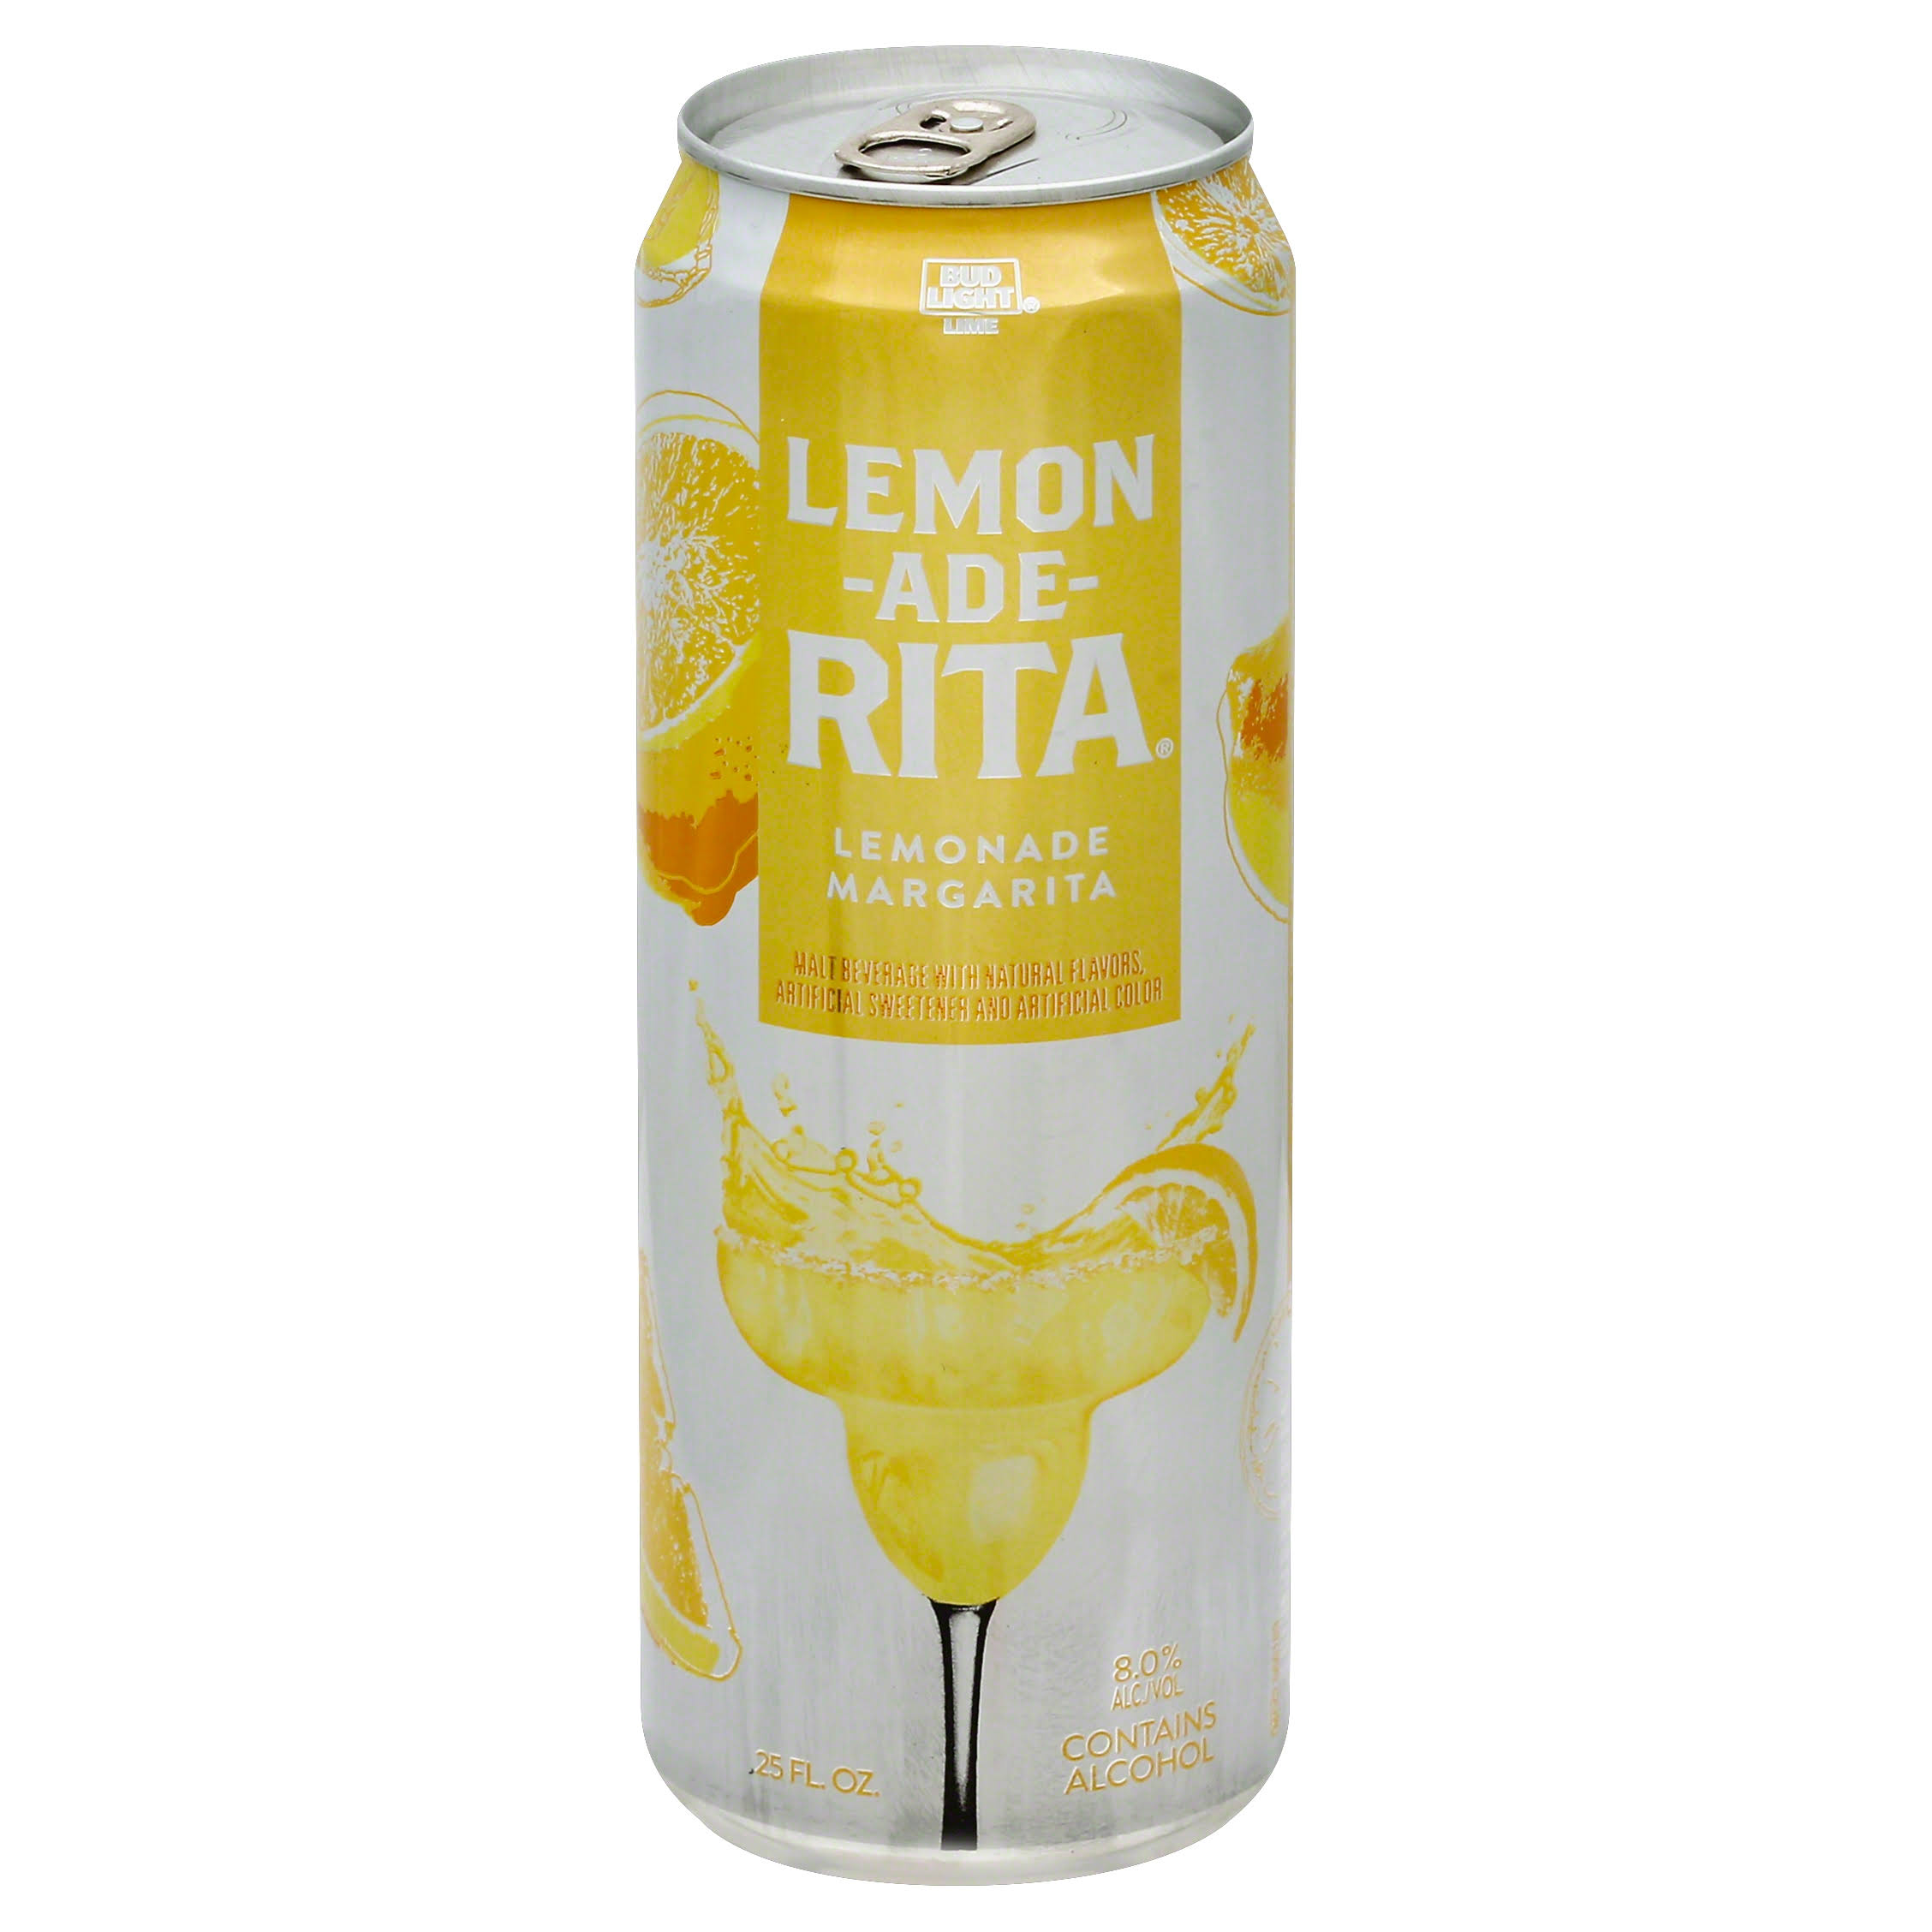 Bud Light Lime Lemon-Ade-Rita Can - 25Oz